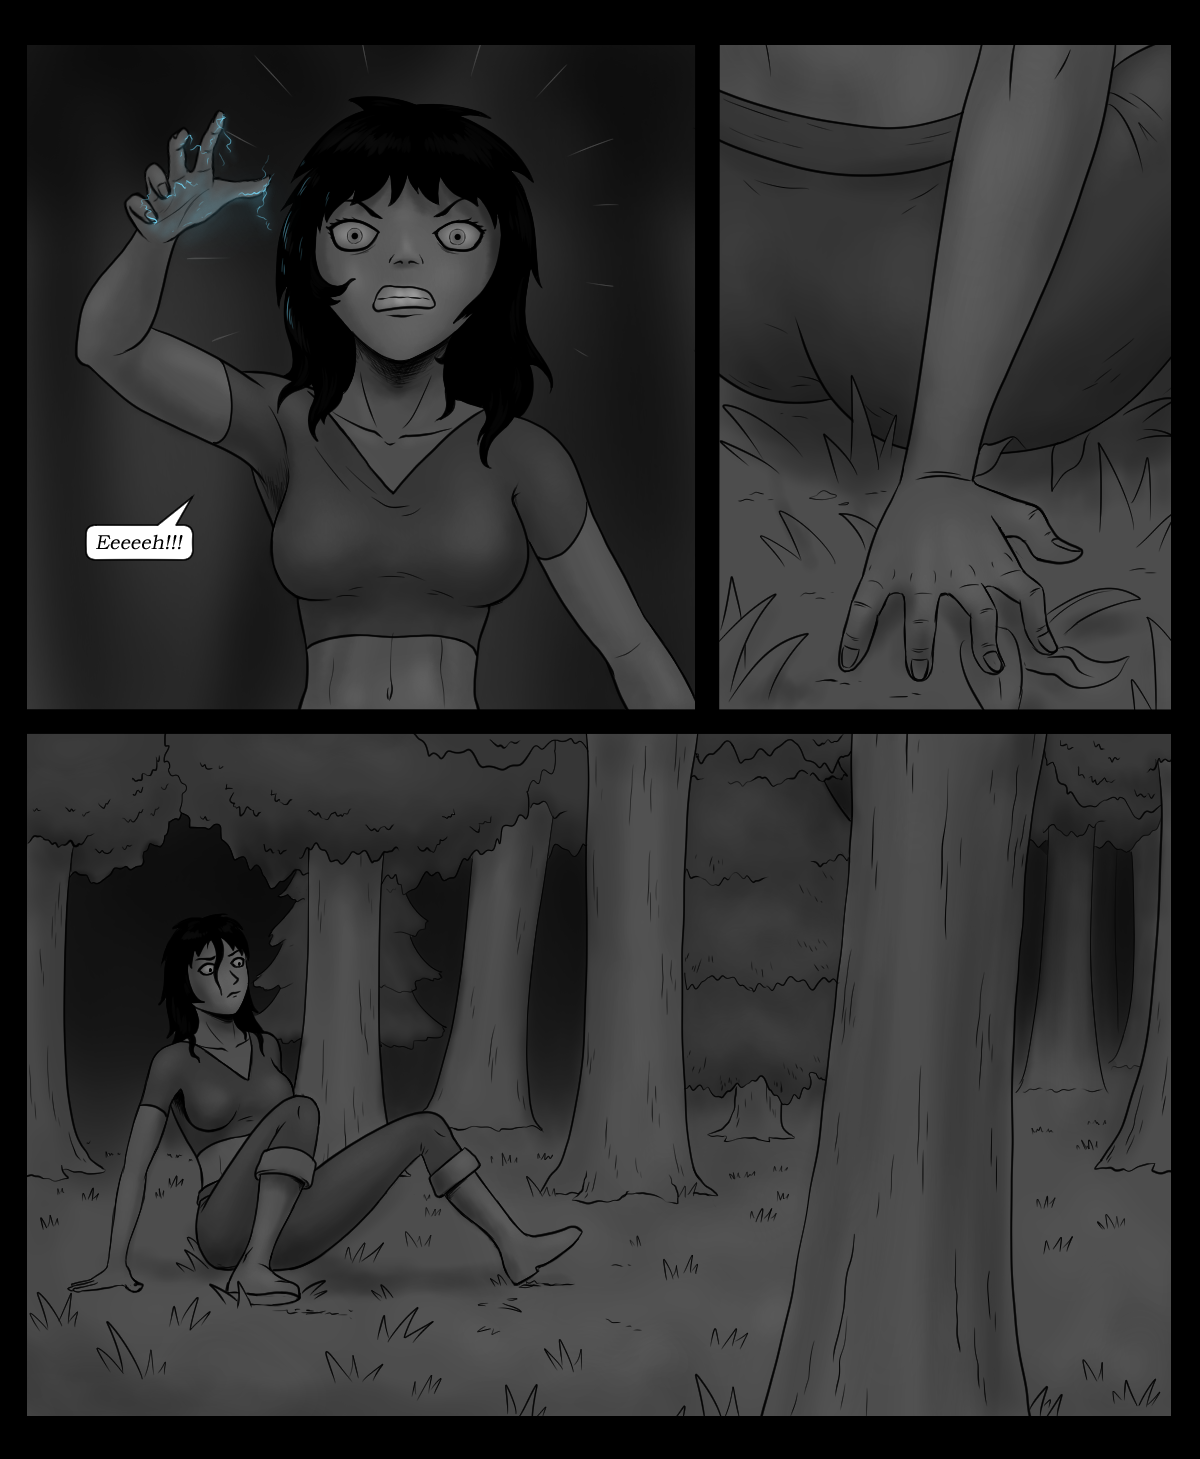 Page 44 - Unexpected